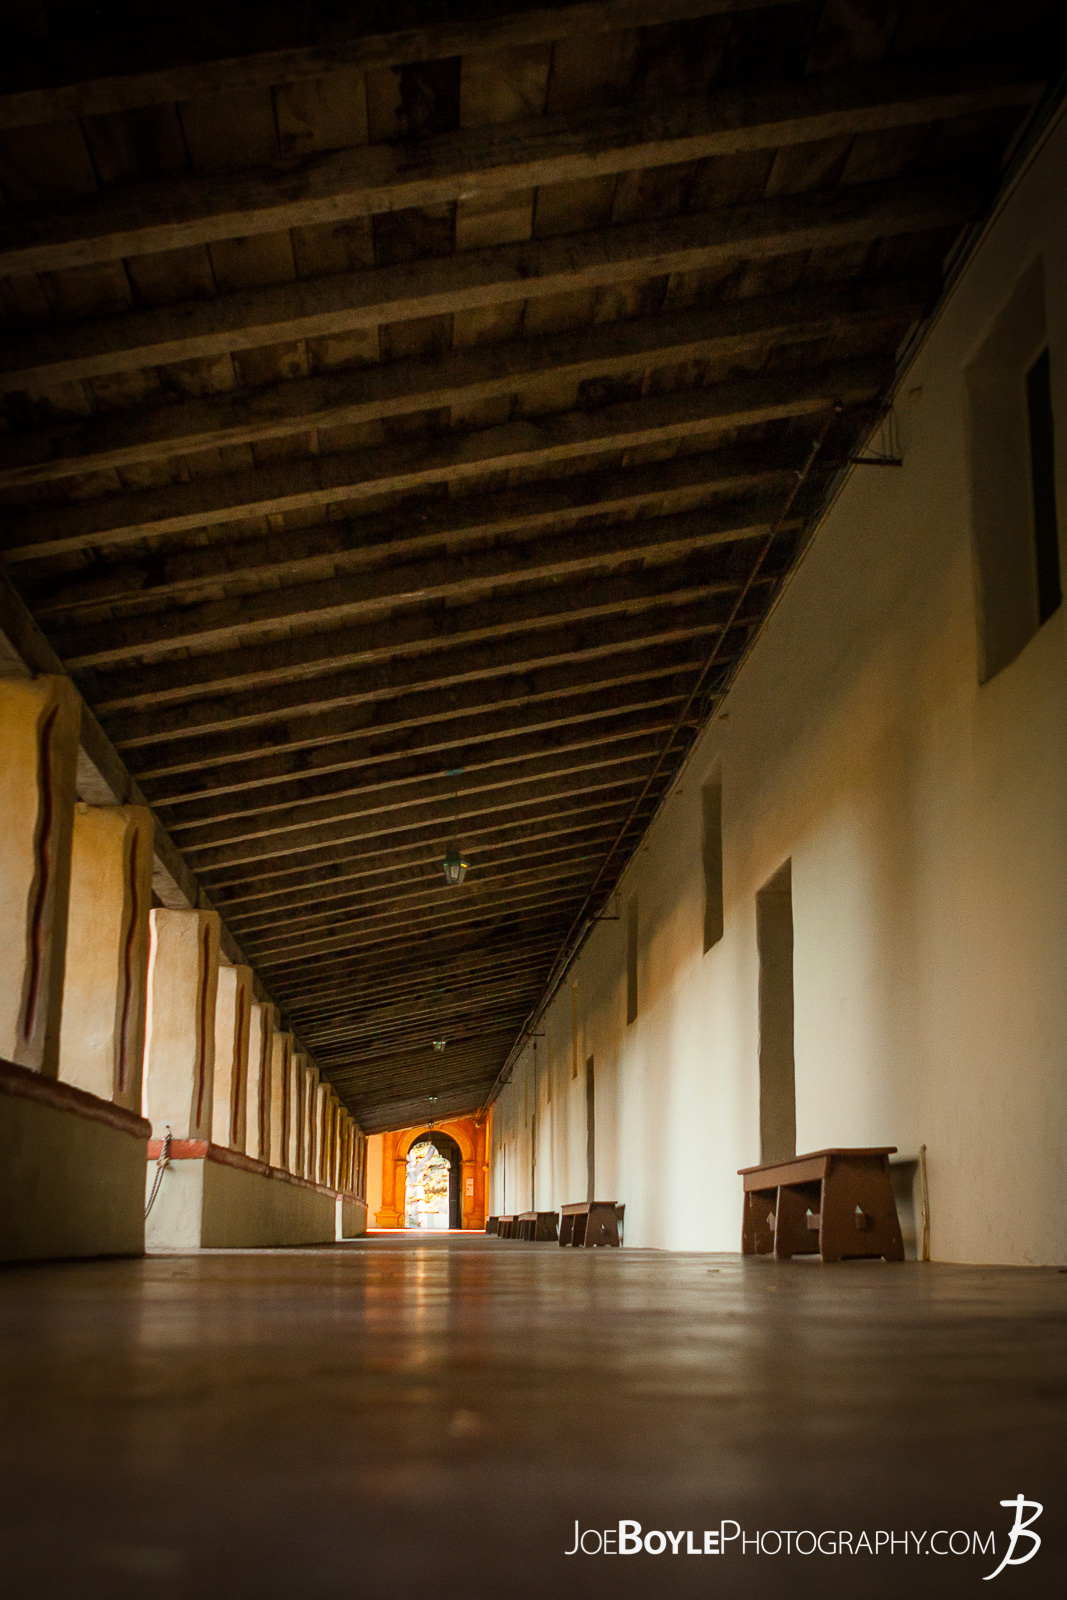 While visiting Carmel by the Sea, my friends and I stopped over at the Carmel Mission Basilica. This is a photo of the hallway at the mission. I really like the repeating wood rafters and long hallway!